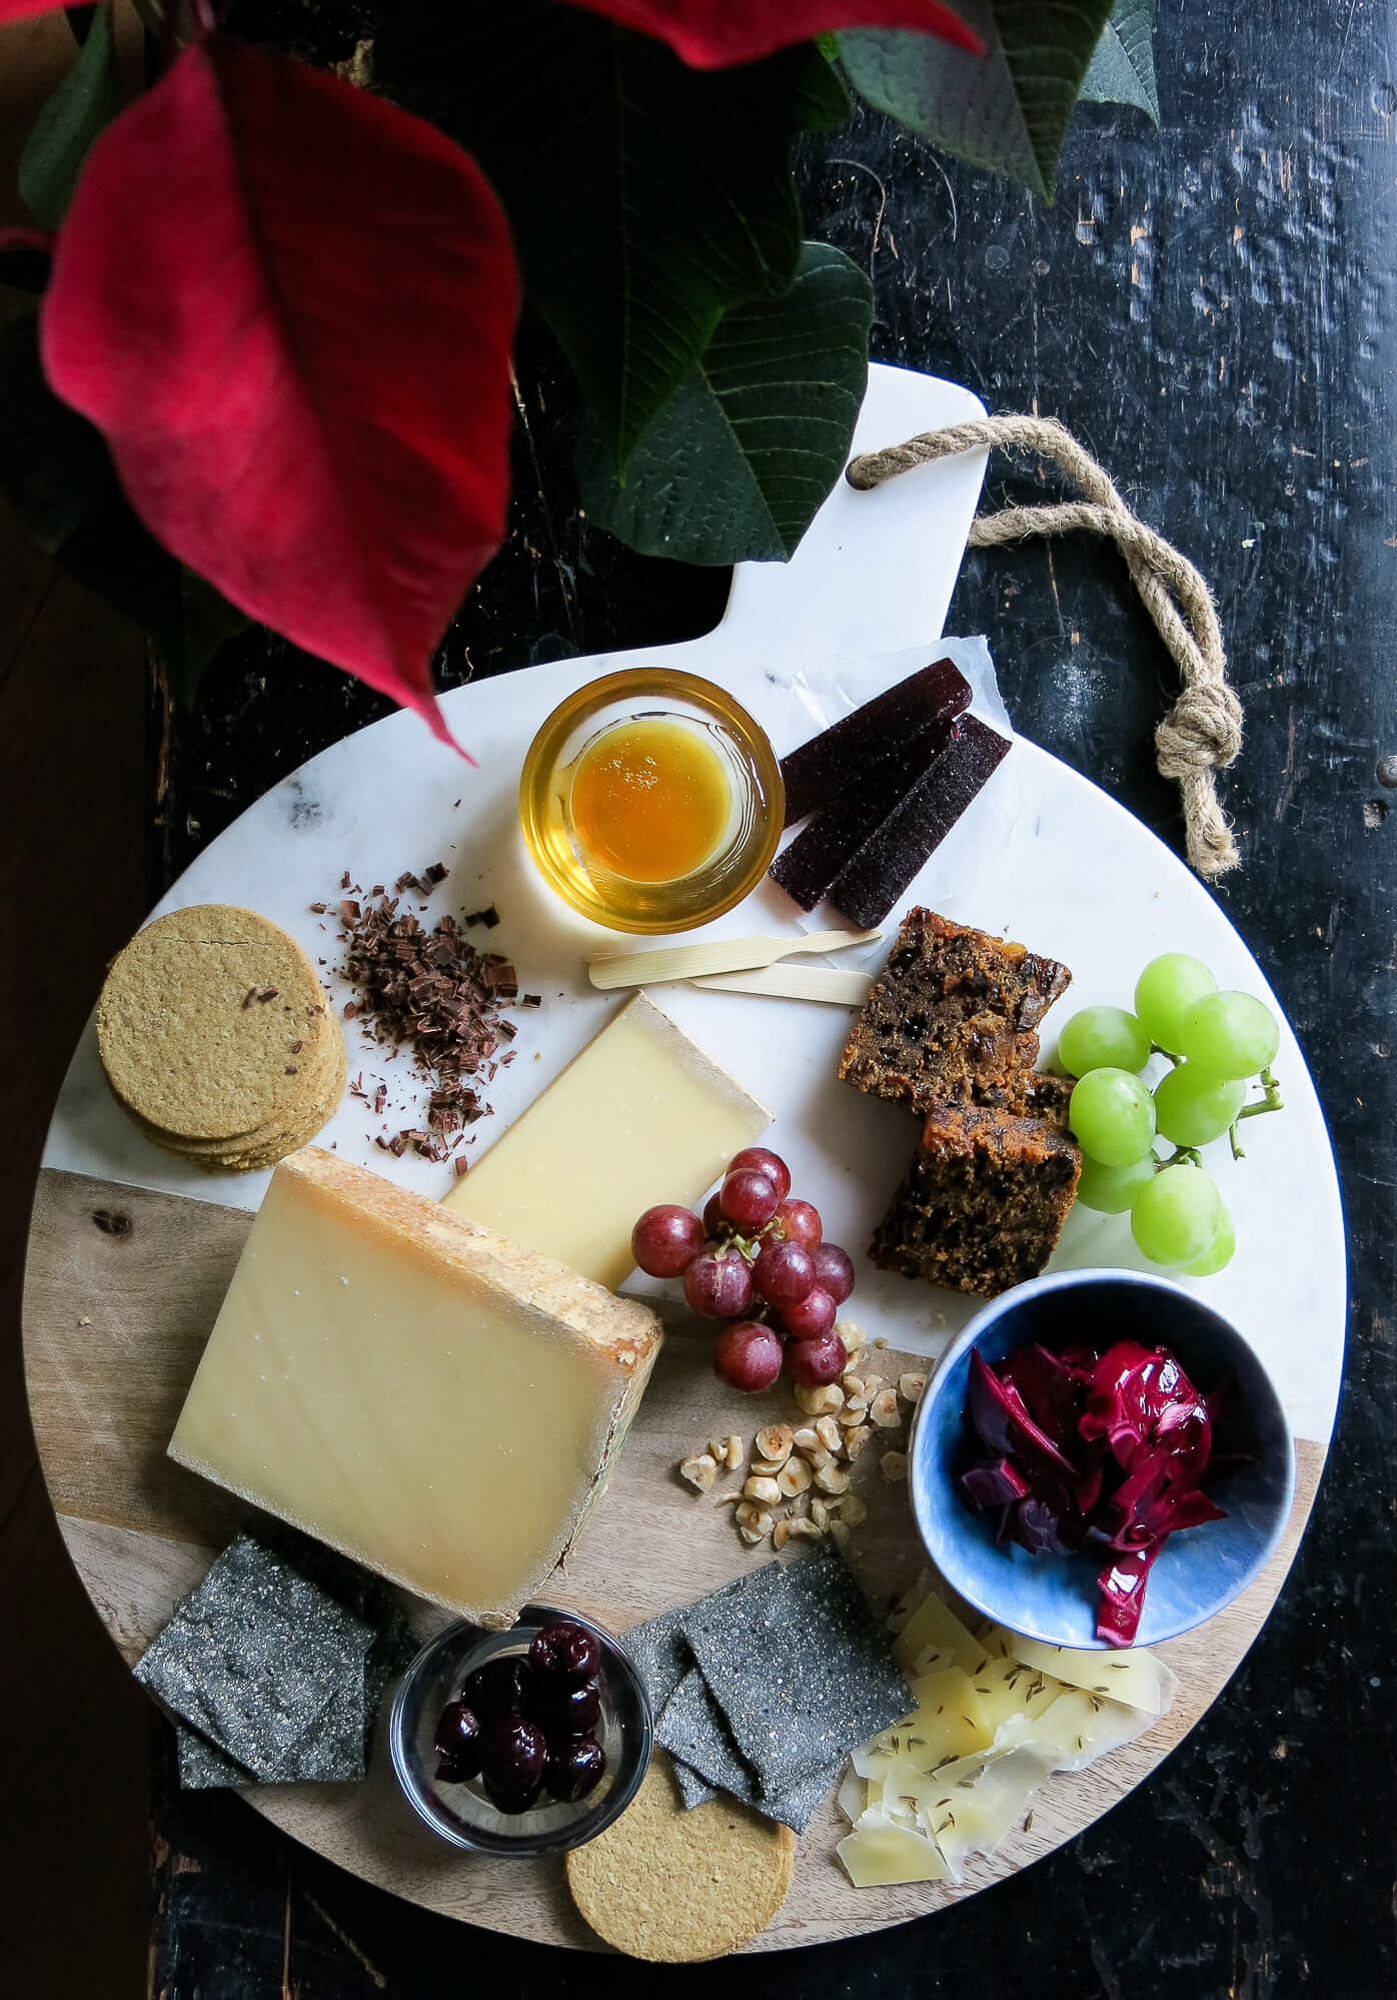 Learn top tips on how to put together the perfect Christmas cheeseboard, ready for your festive dinner party!